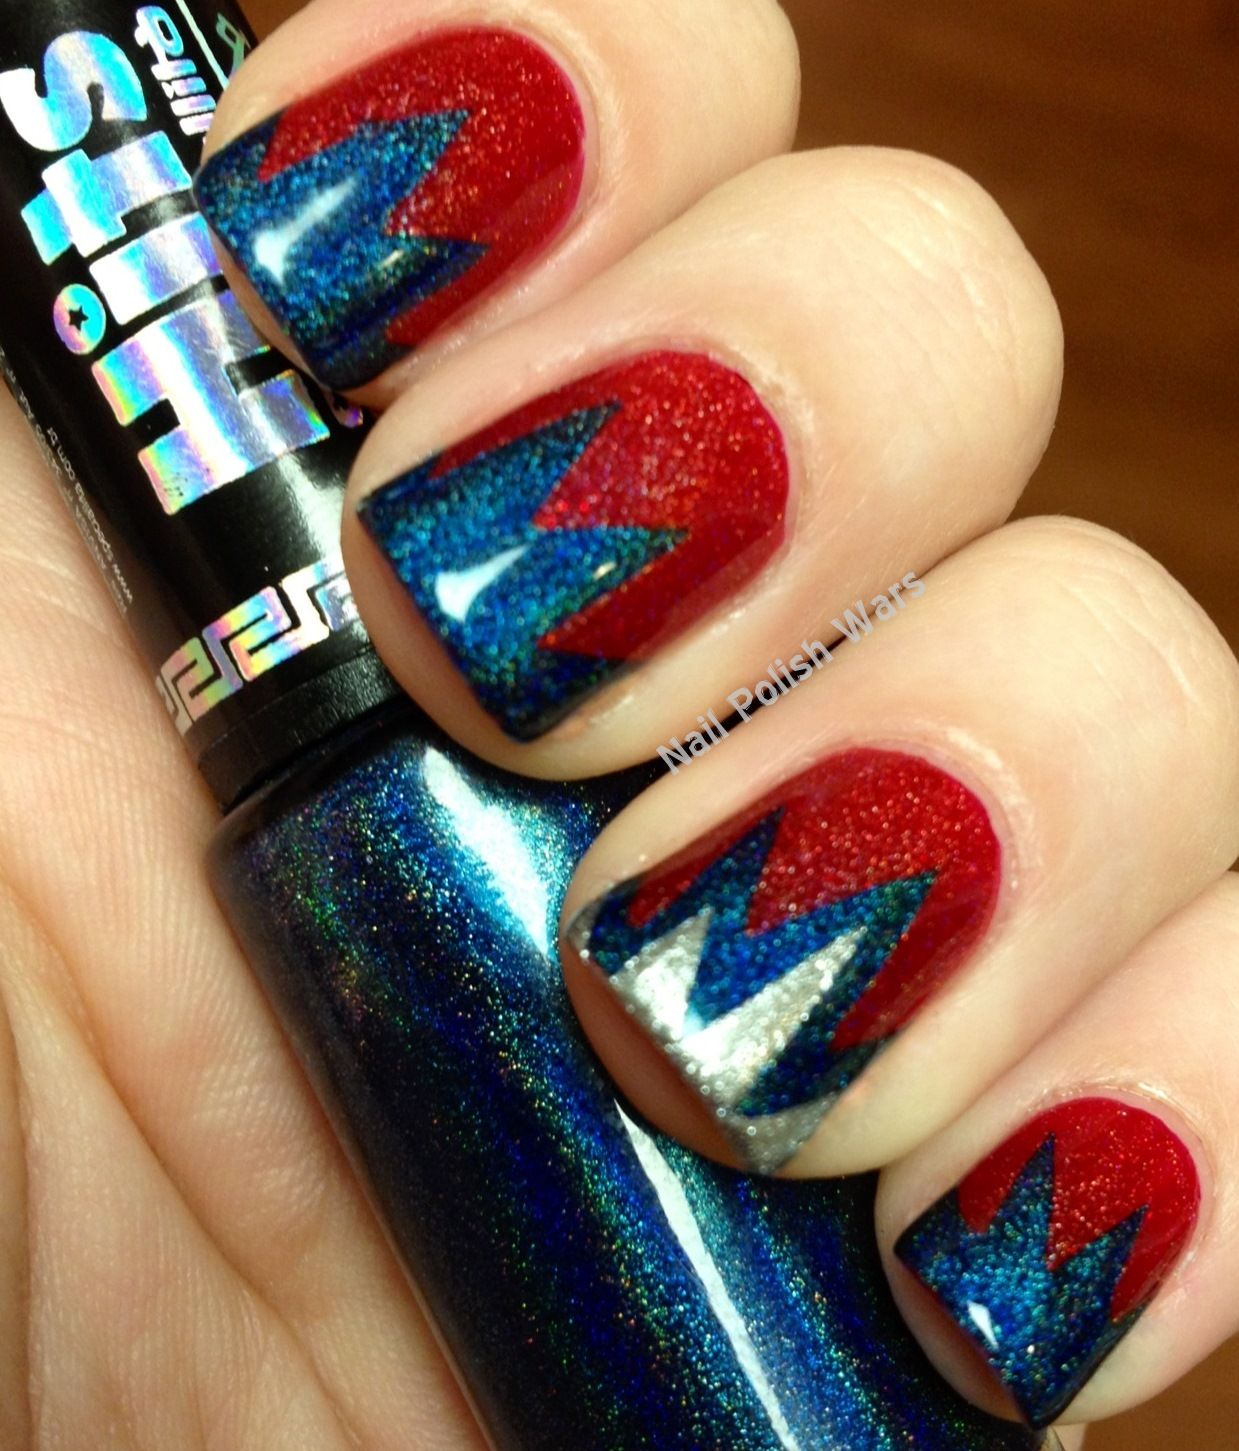 Pin by buddyyhrrr on Beauty in 2020 | Nails, Fashion nails